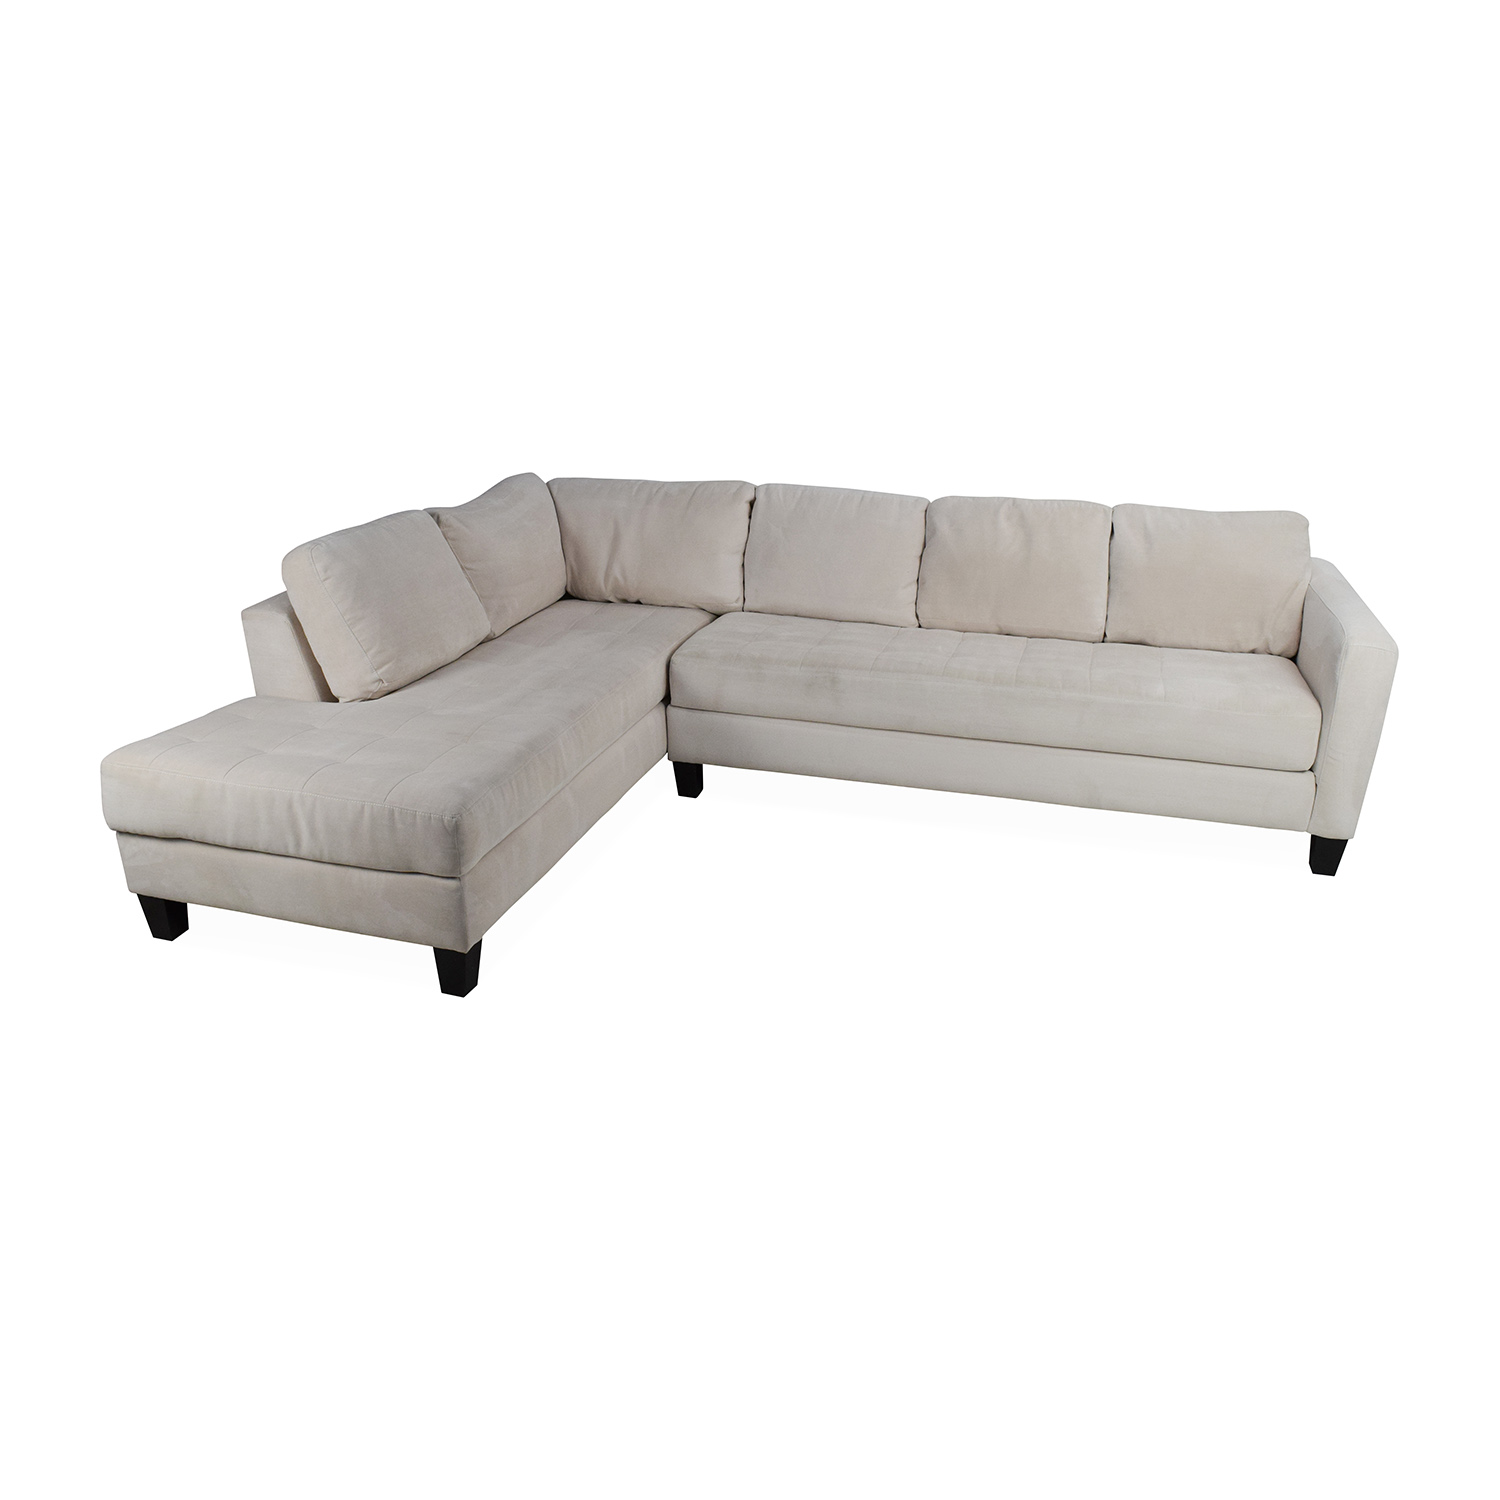 65% OFF Macy s Macy s Milo Fabric Microfiber Sectional Sofas